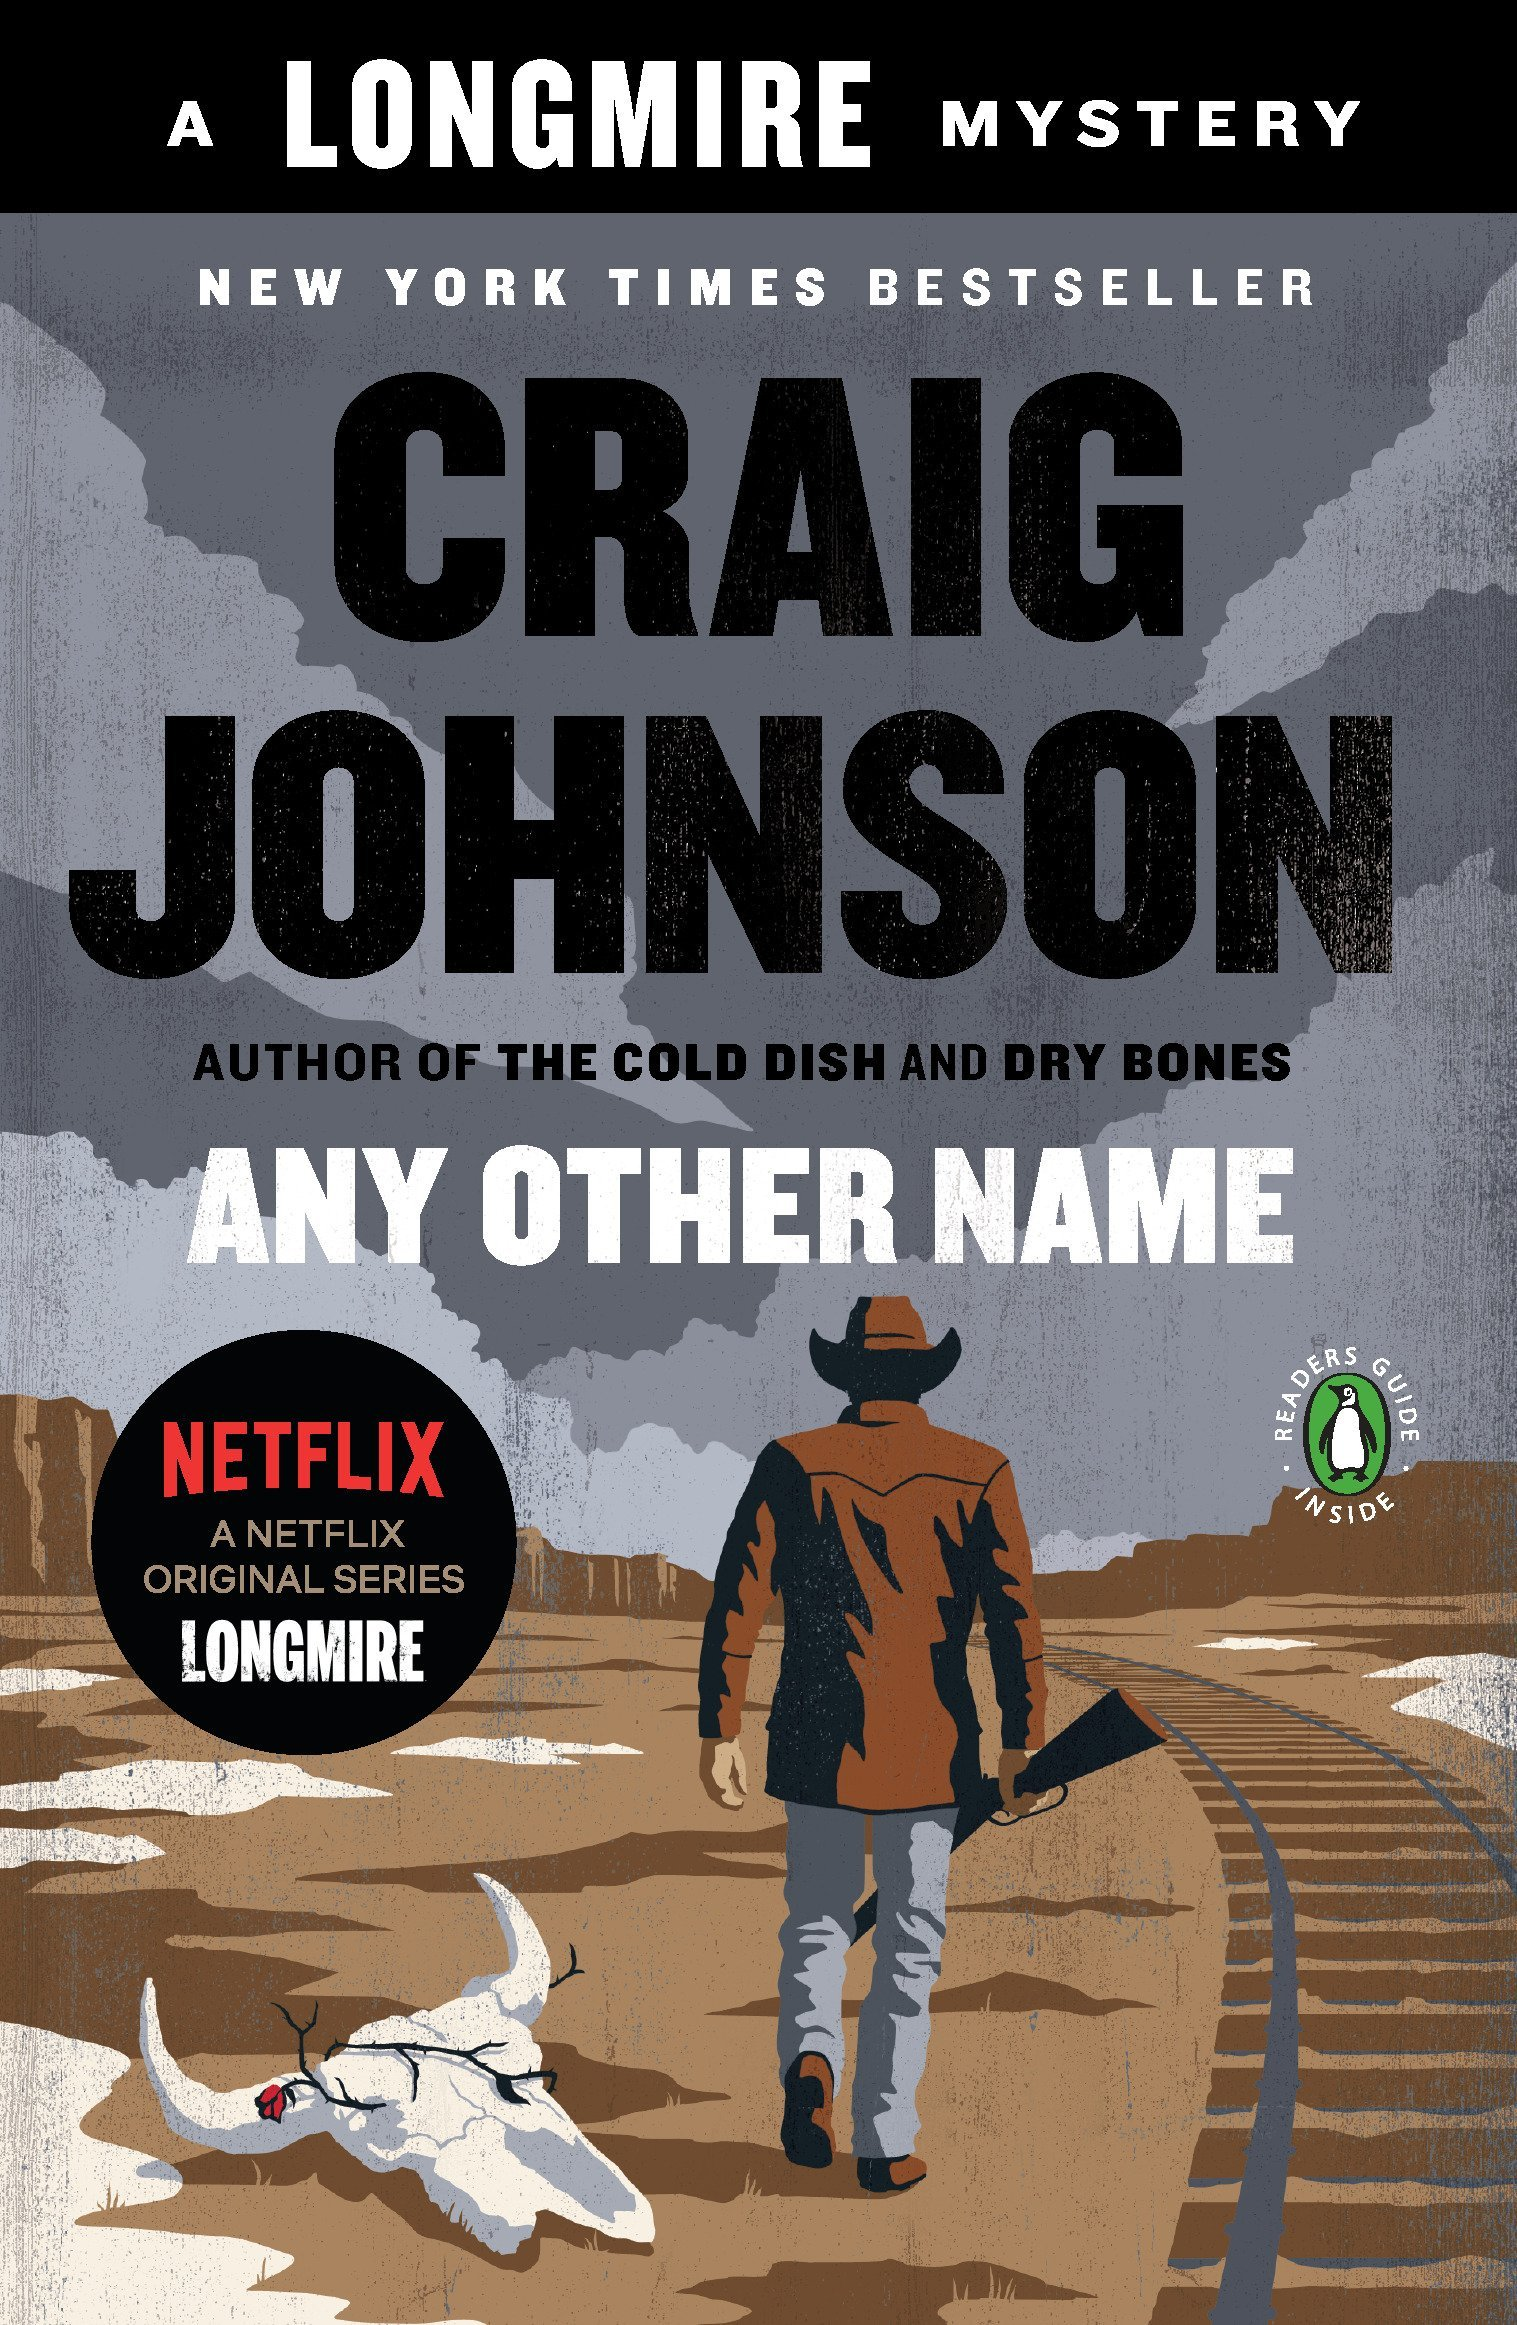 Any Other Name: A Longmire Mystery (Walt Longmire Mysteries Book 10)